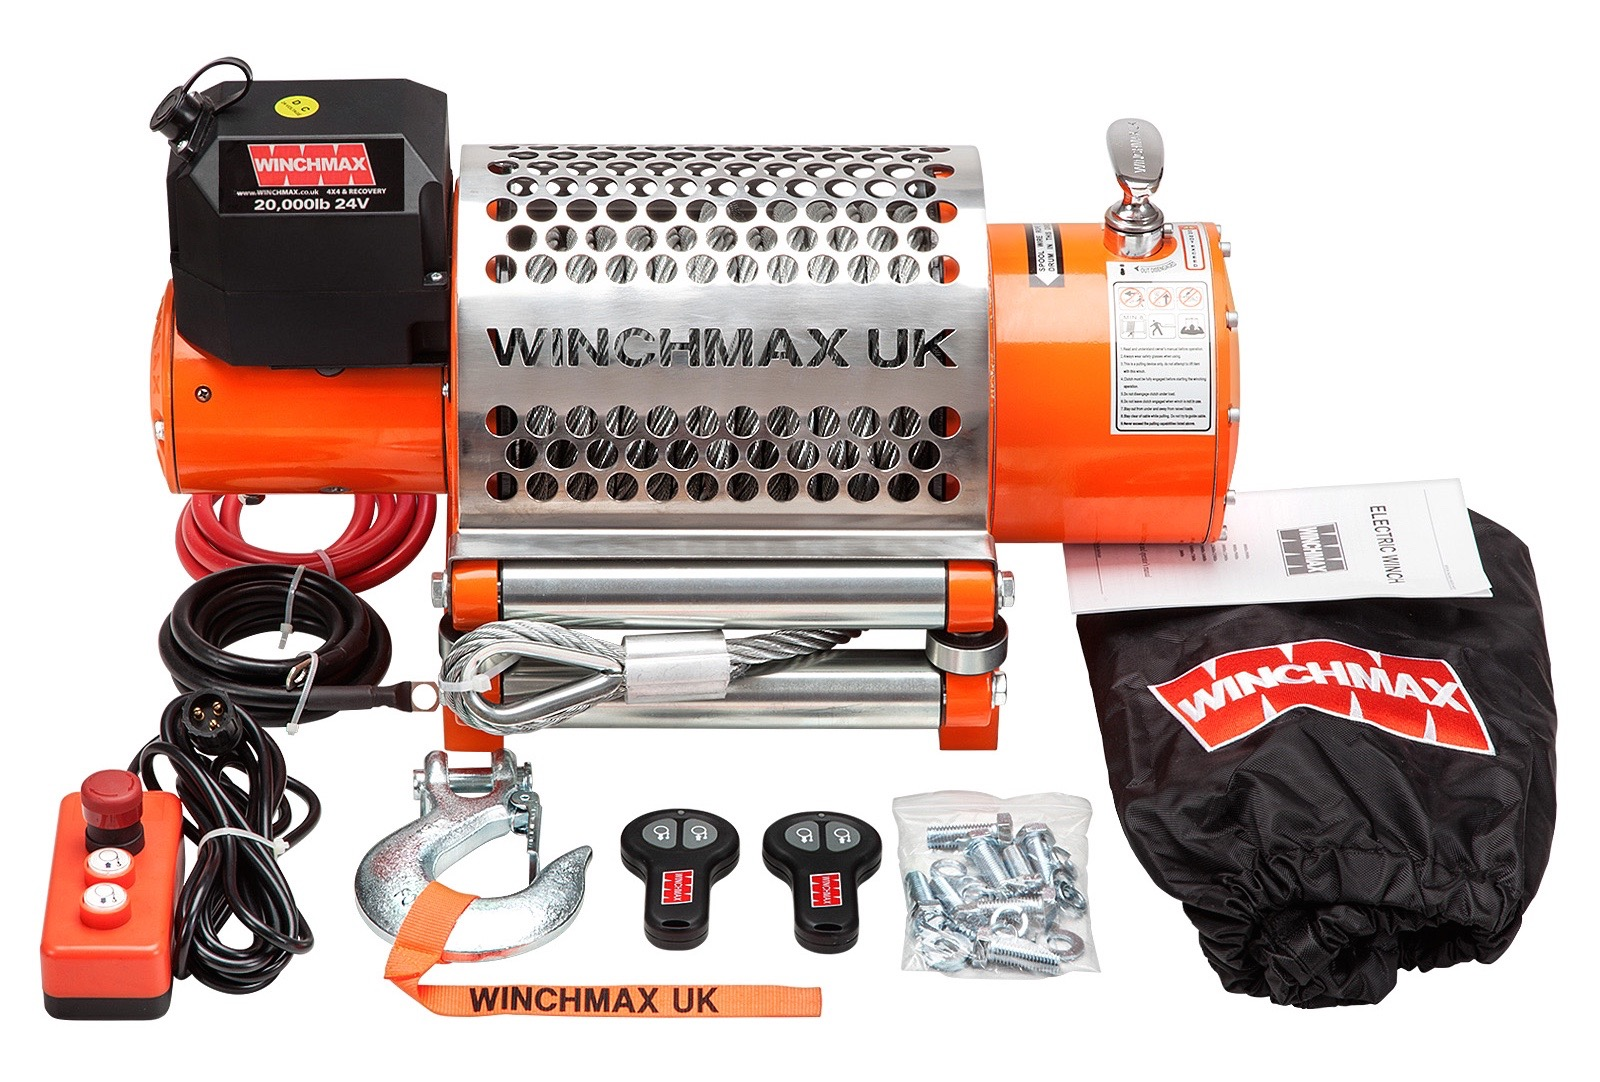 product_view.php?pid=WINCHMAX 24V 20000LB RECOVERY WINCH